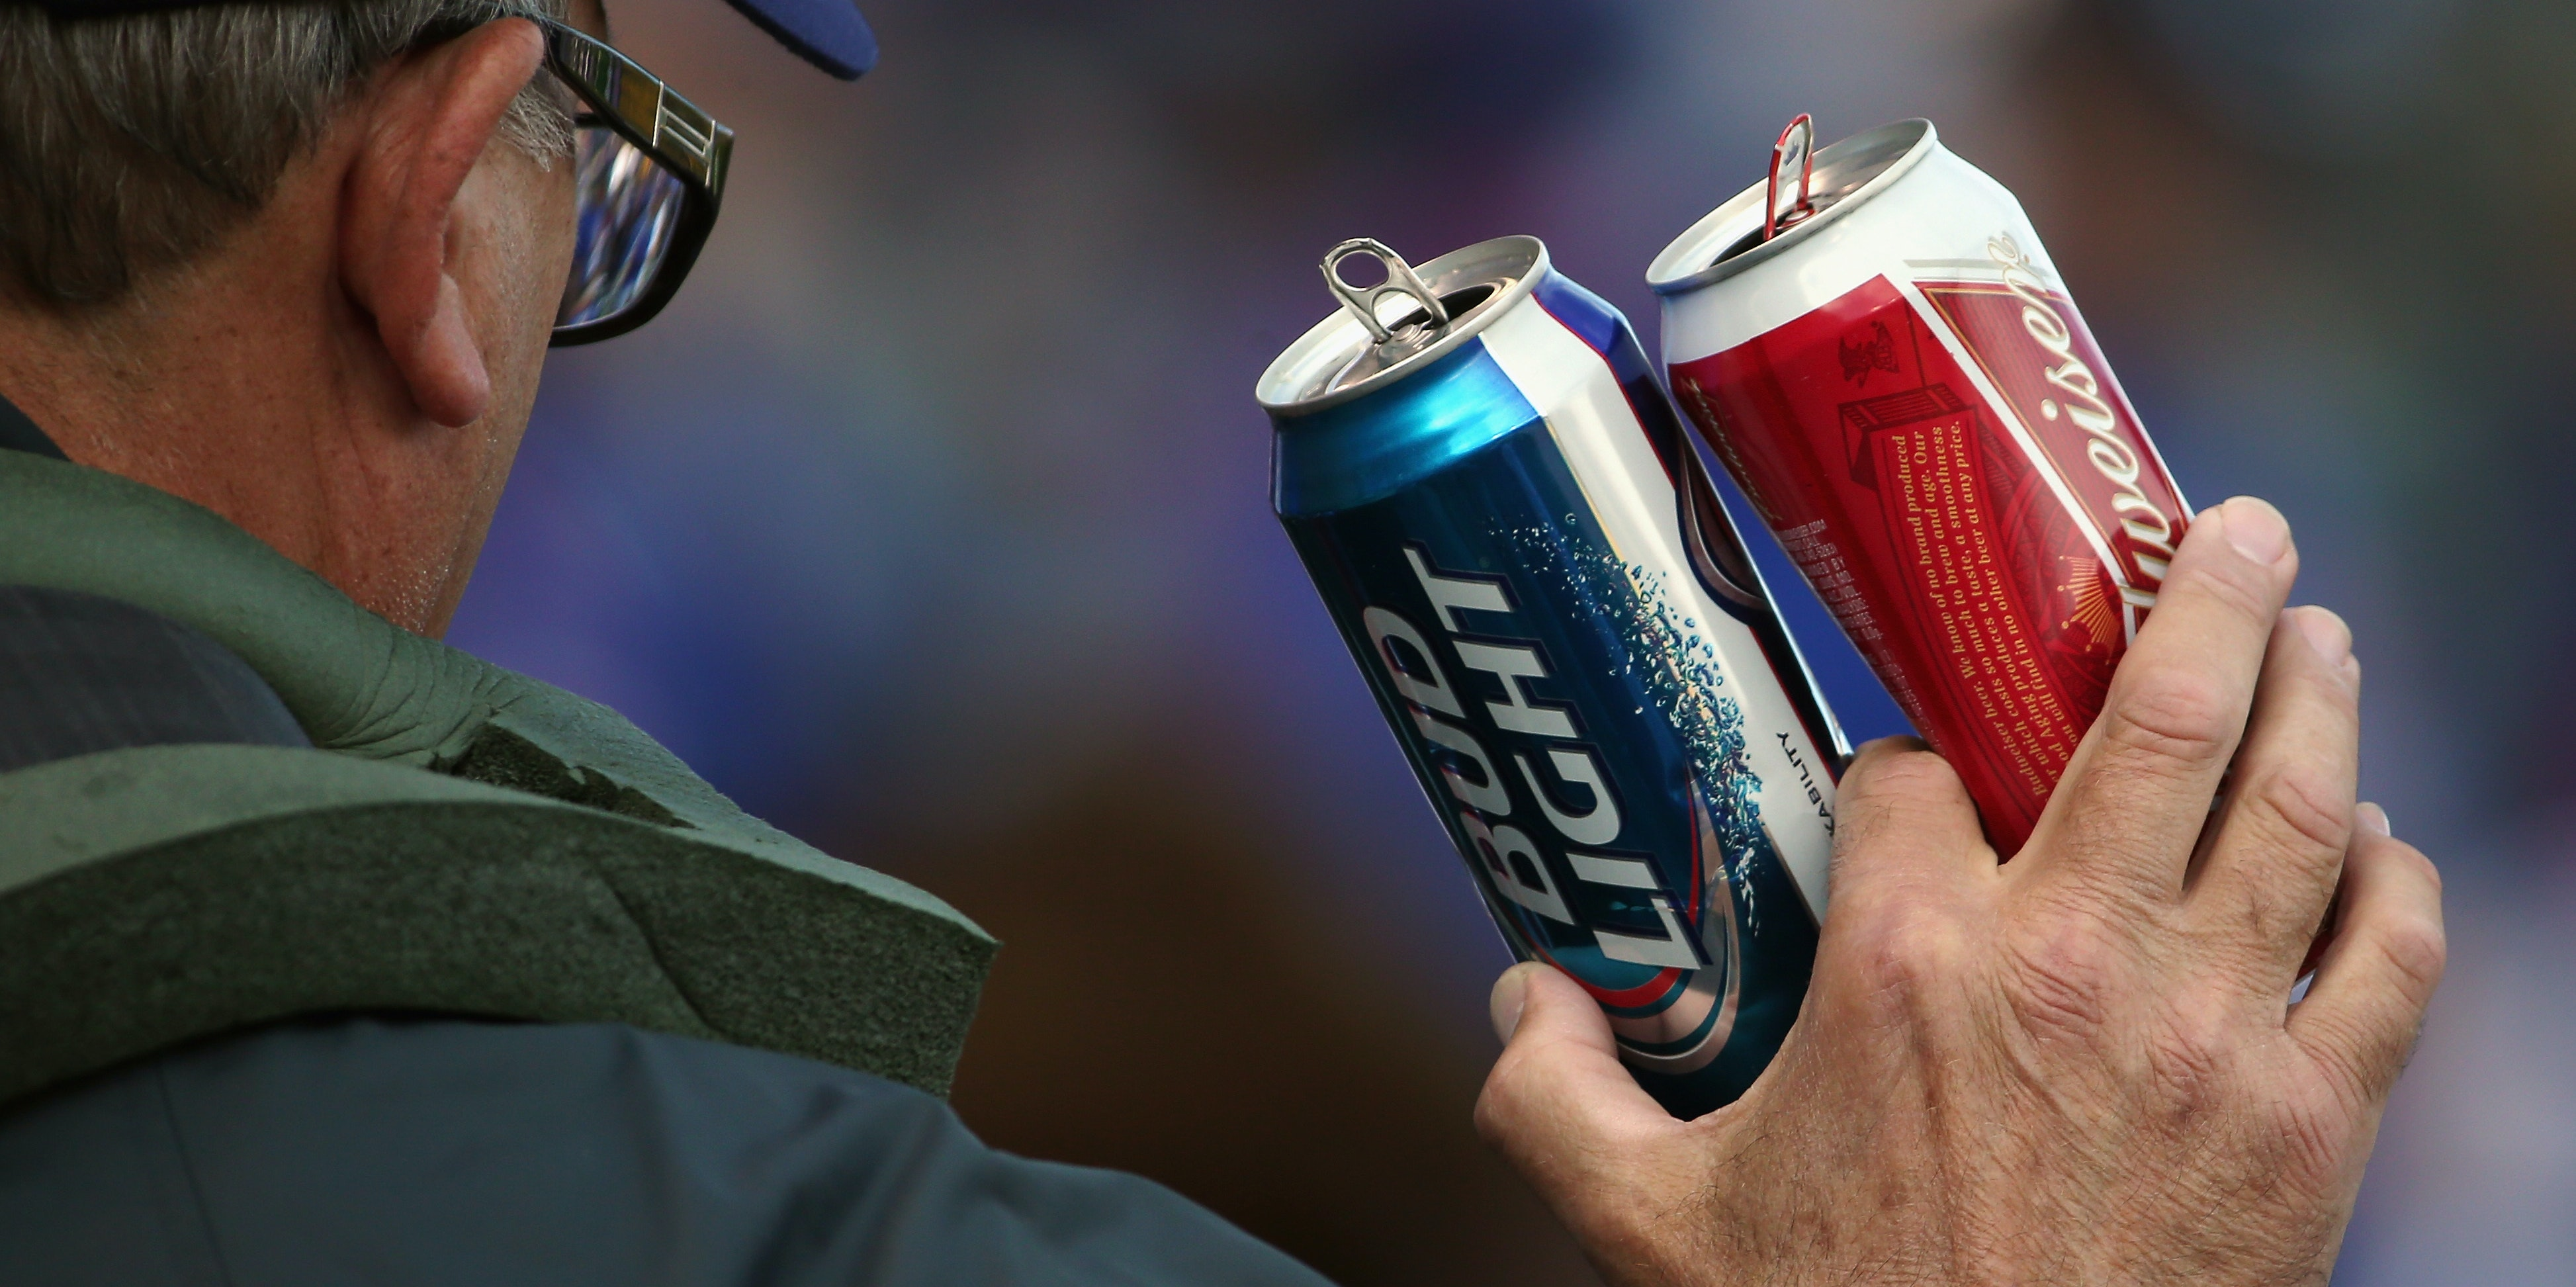 Beer Bottles and Aluminum Cans: What's Left?